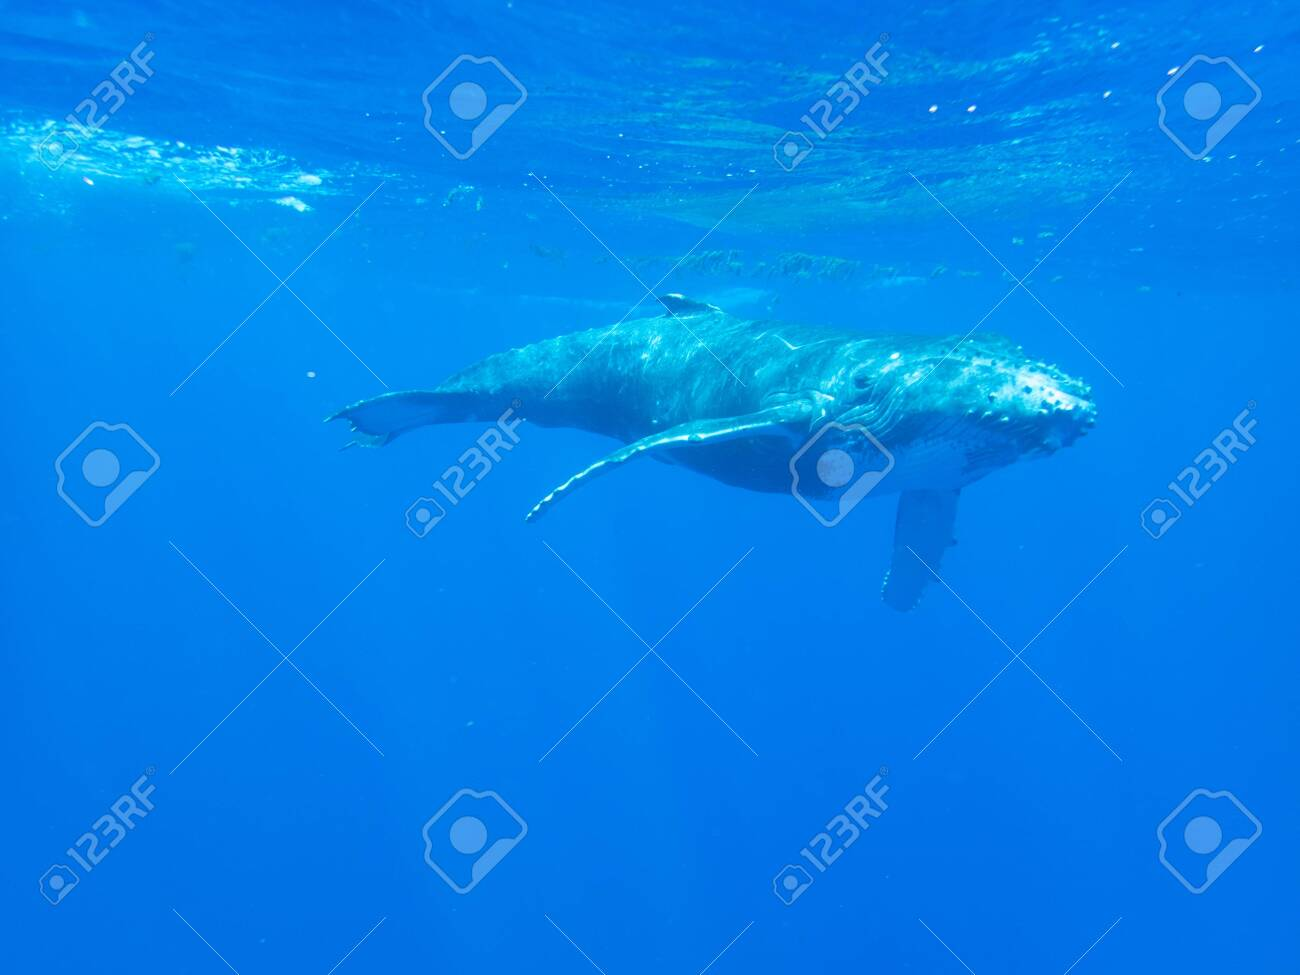 Humpback whale calf underwater off the island of Moorea in French Polynesia, right next to Tahiti. - 156419364